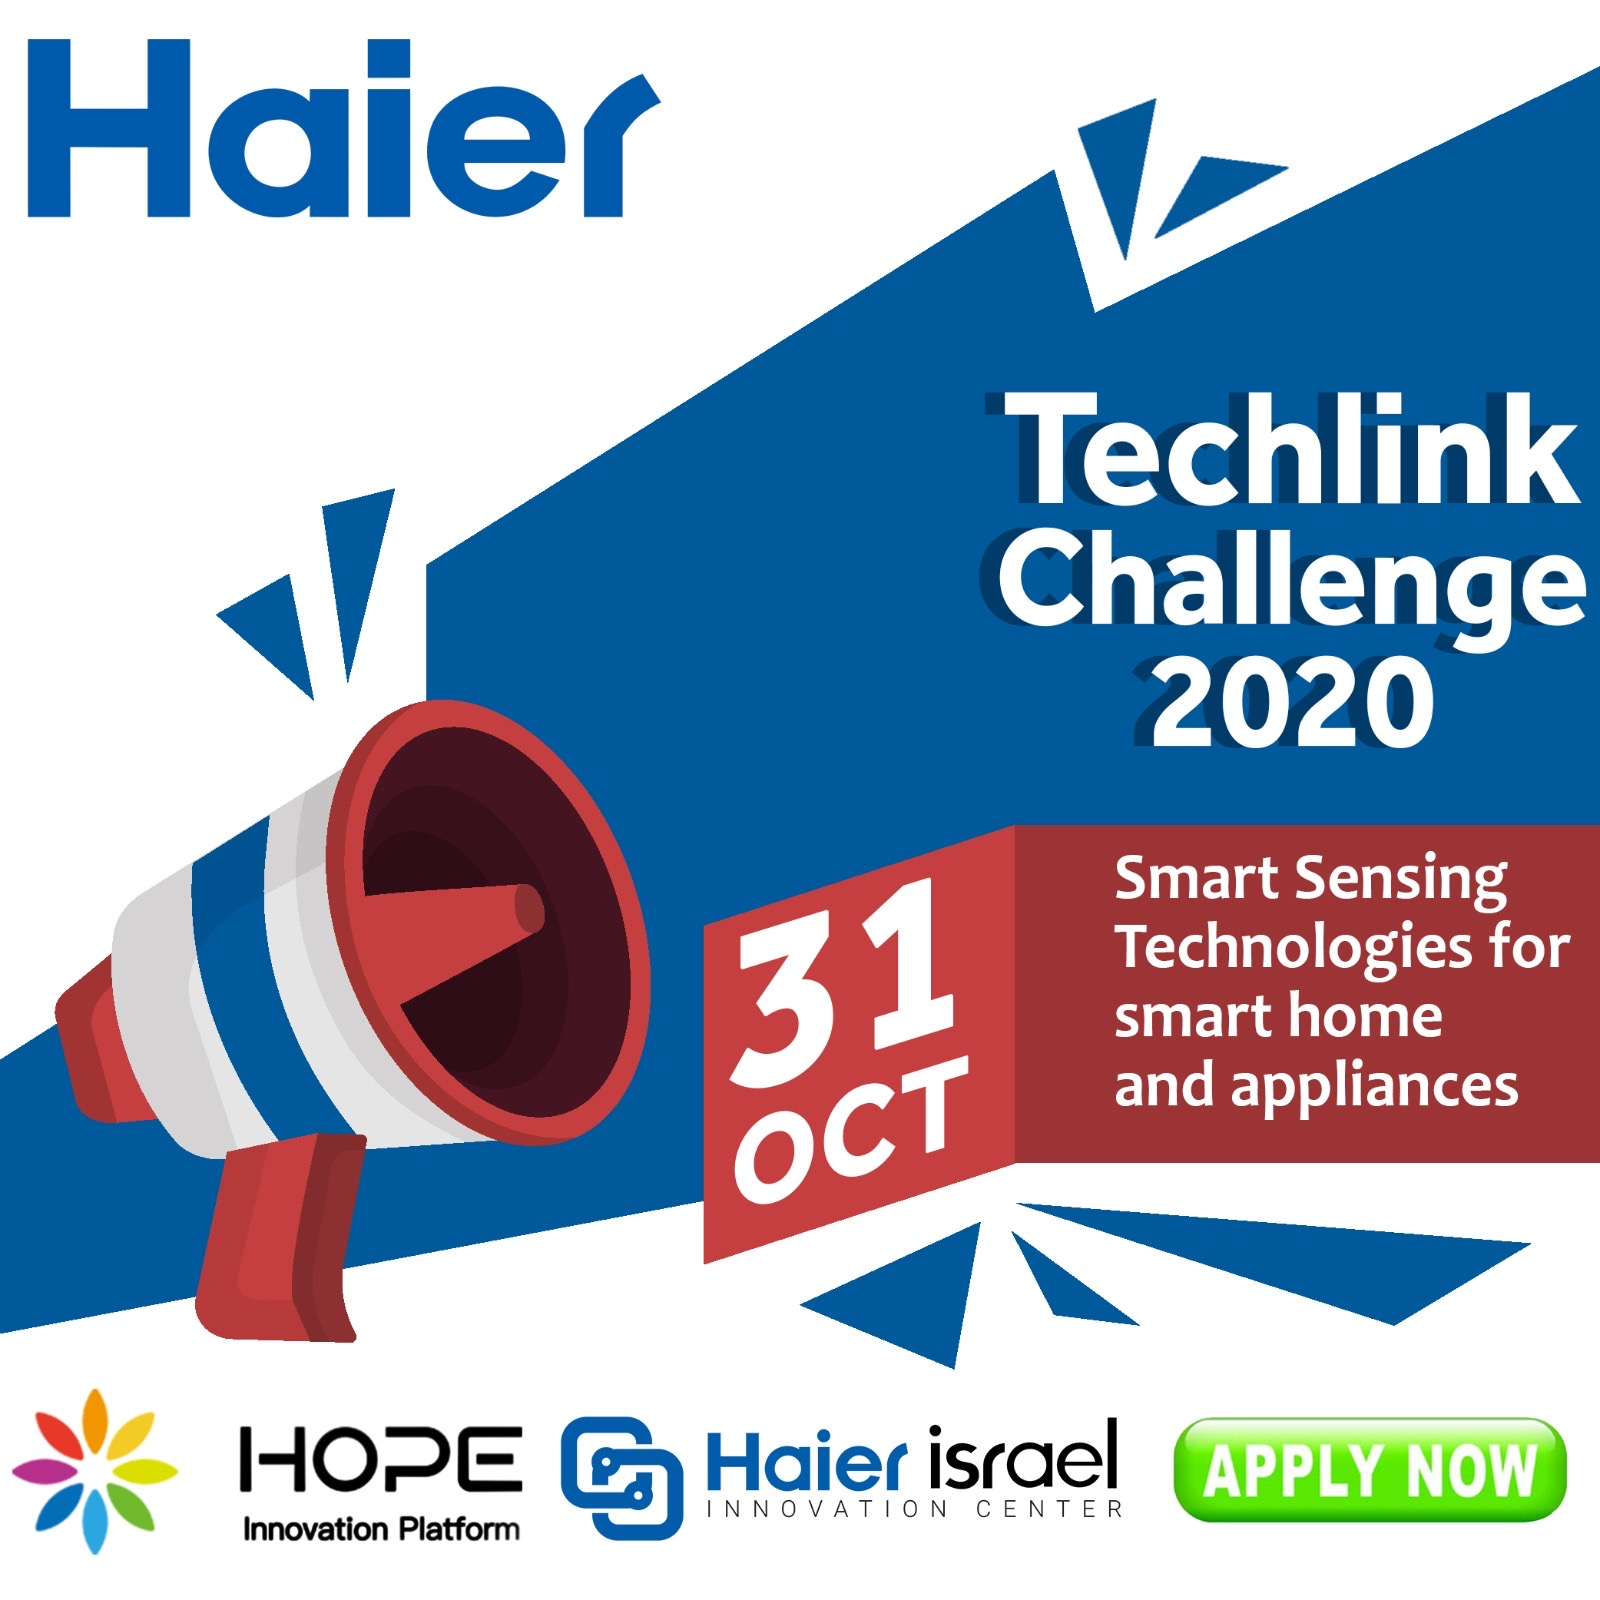 Seeking Smart Sensing Technologies for Smart Home and Appliances - Haier's Techlink Challenge